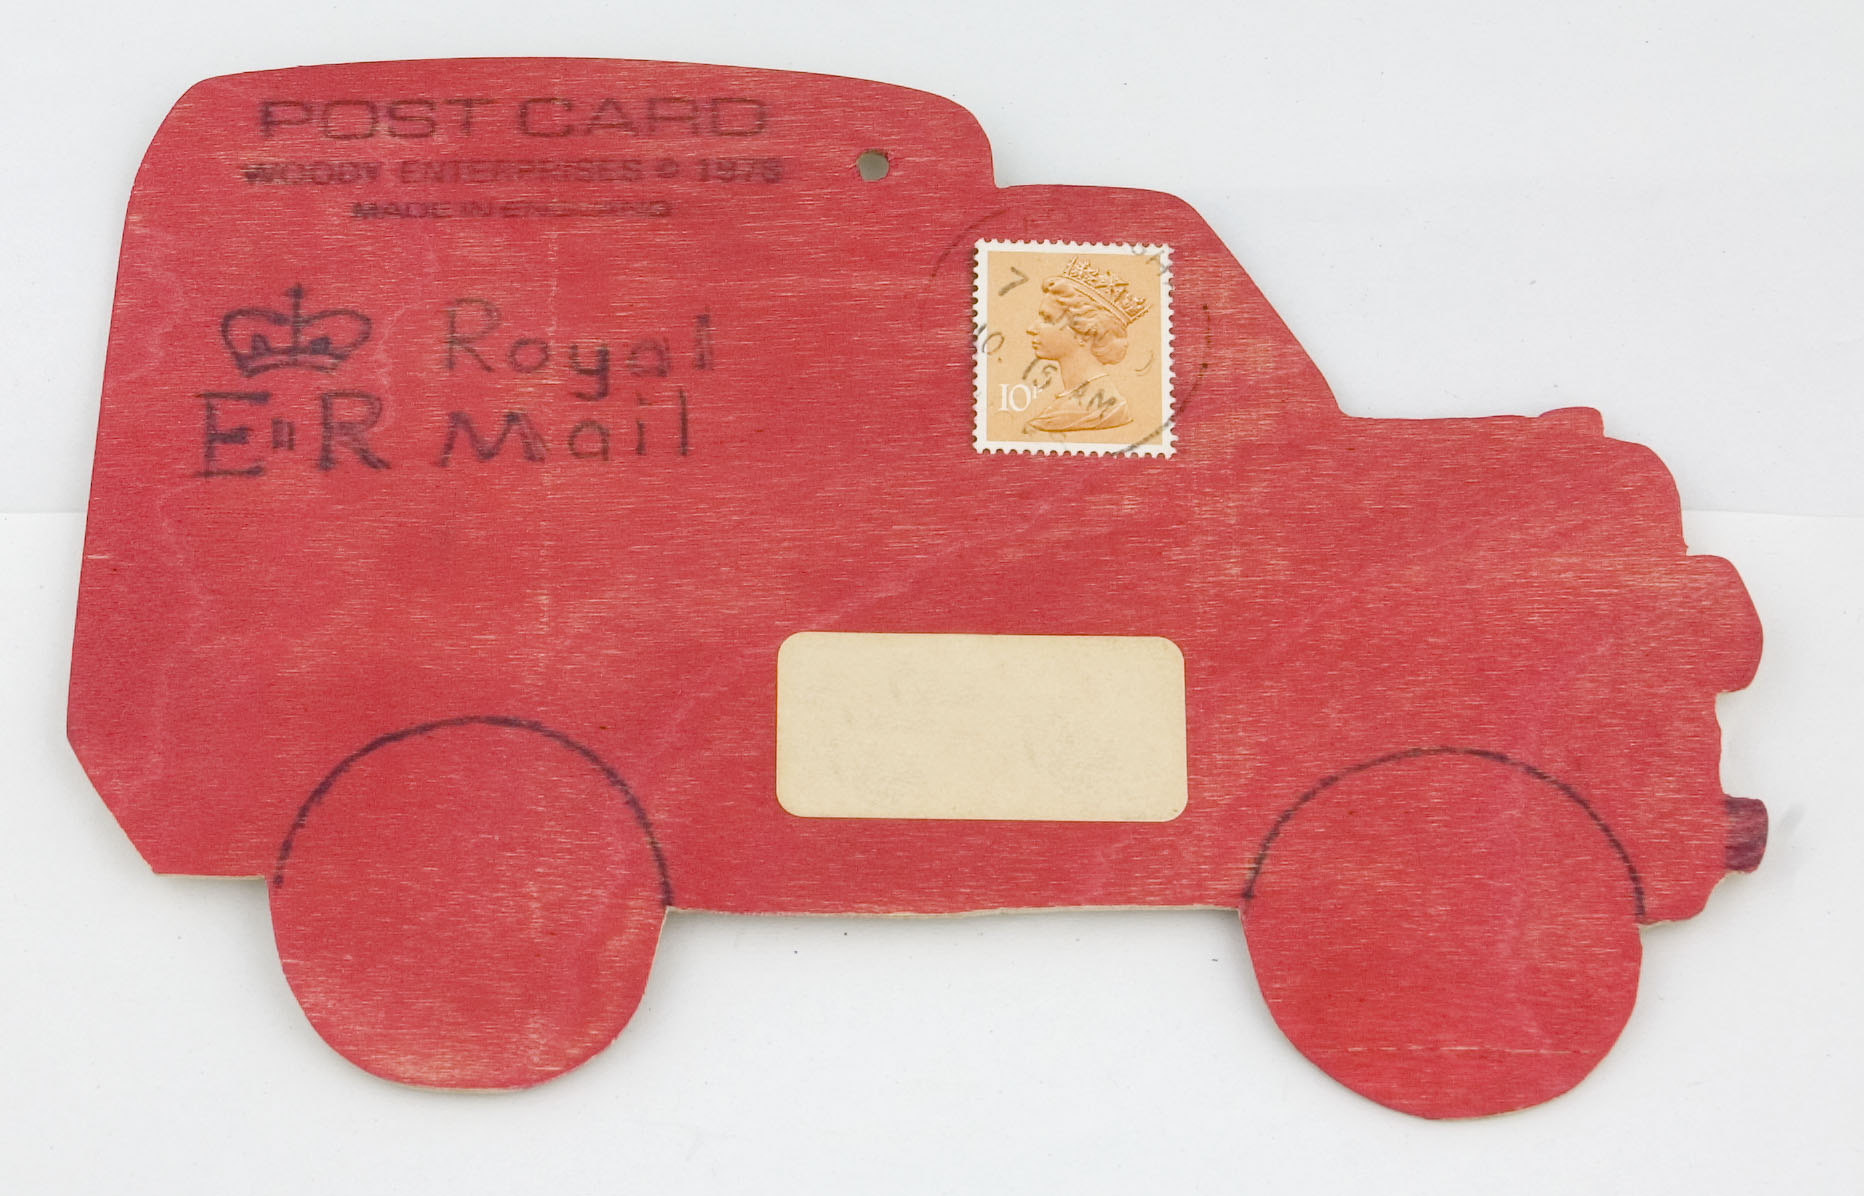 Image of a wooden postcard in the shape of a post van. The van is red with a hand drawn Royal Mail monogram.